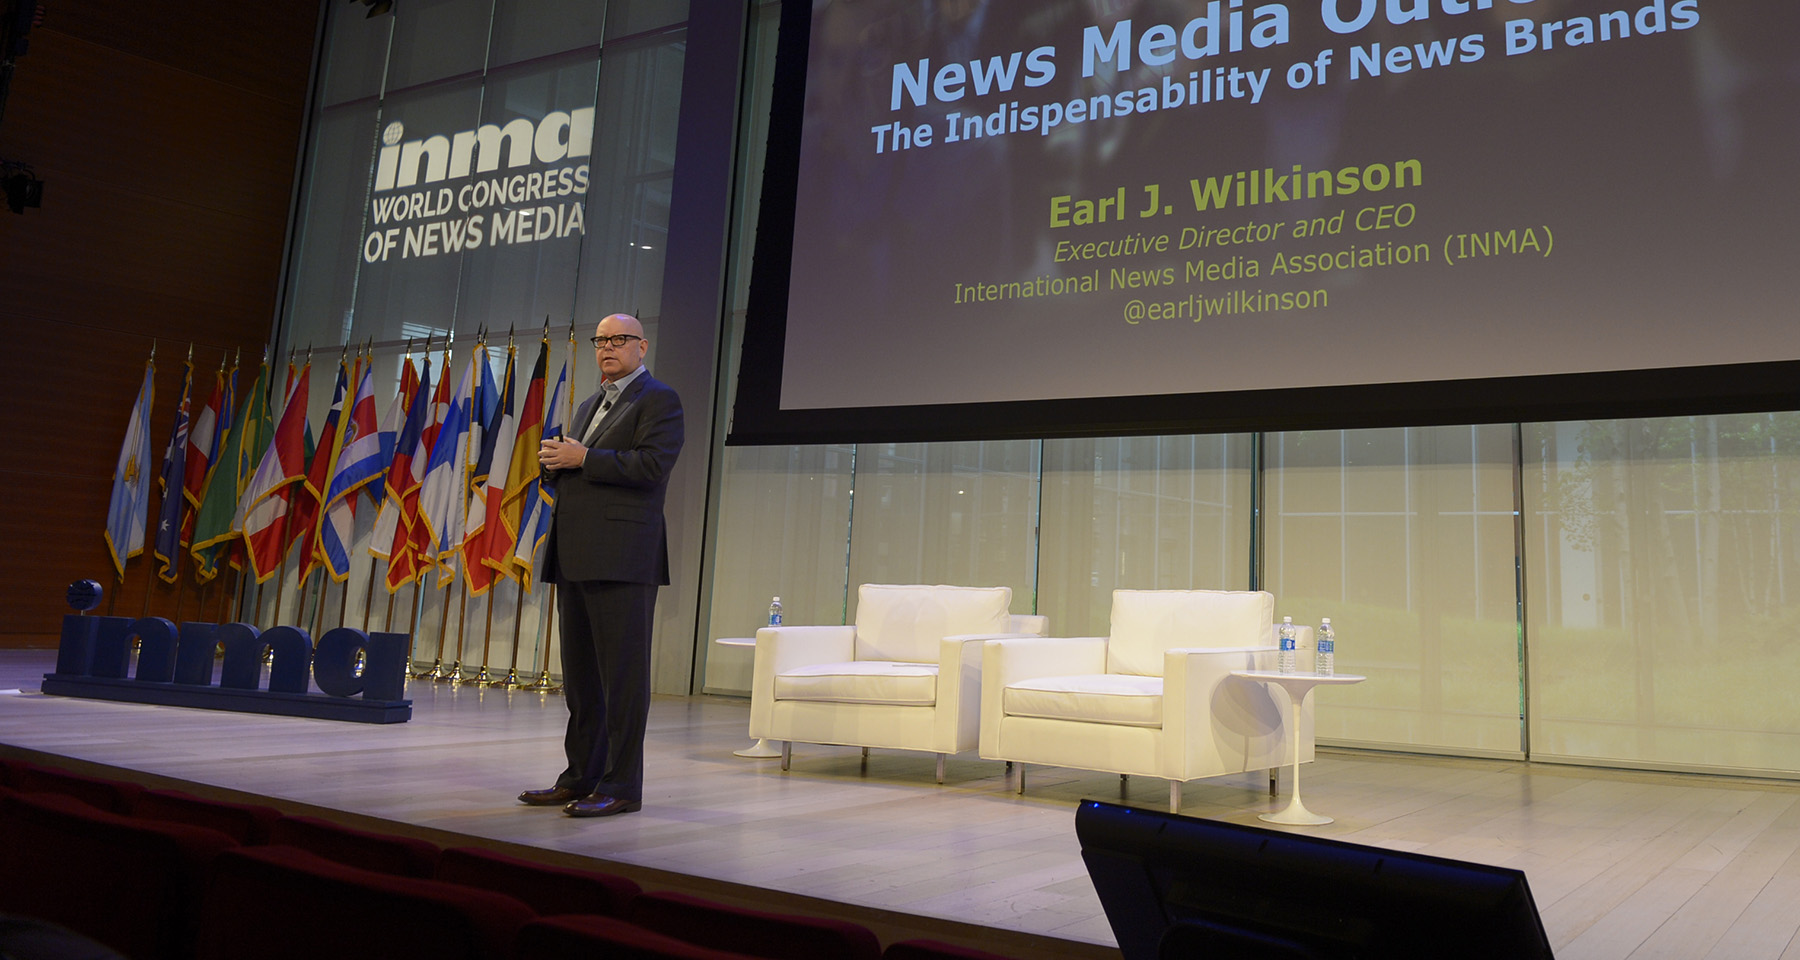 INMA CEO lays out 3 priorities to news media companies